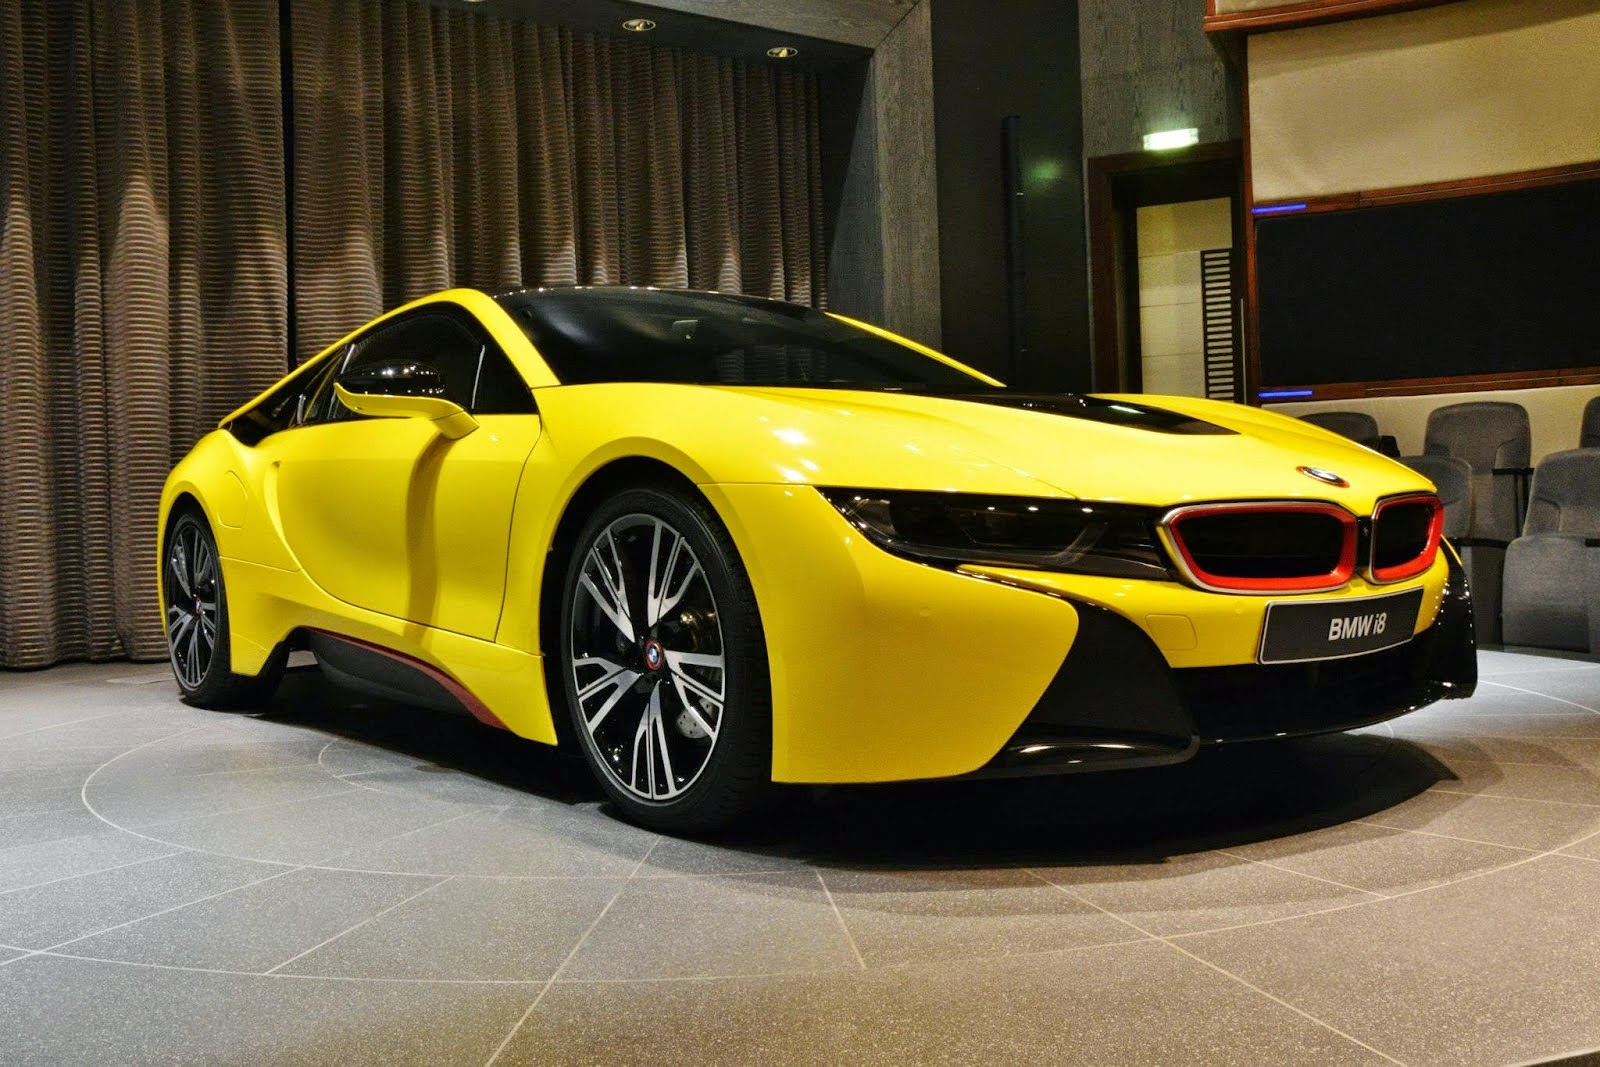 Bmw I8 Wrapped In Bright Yellow With Red Accents